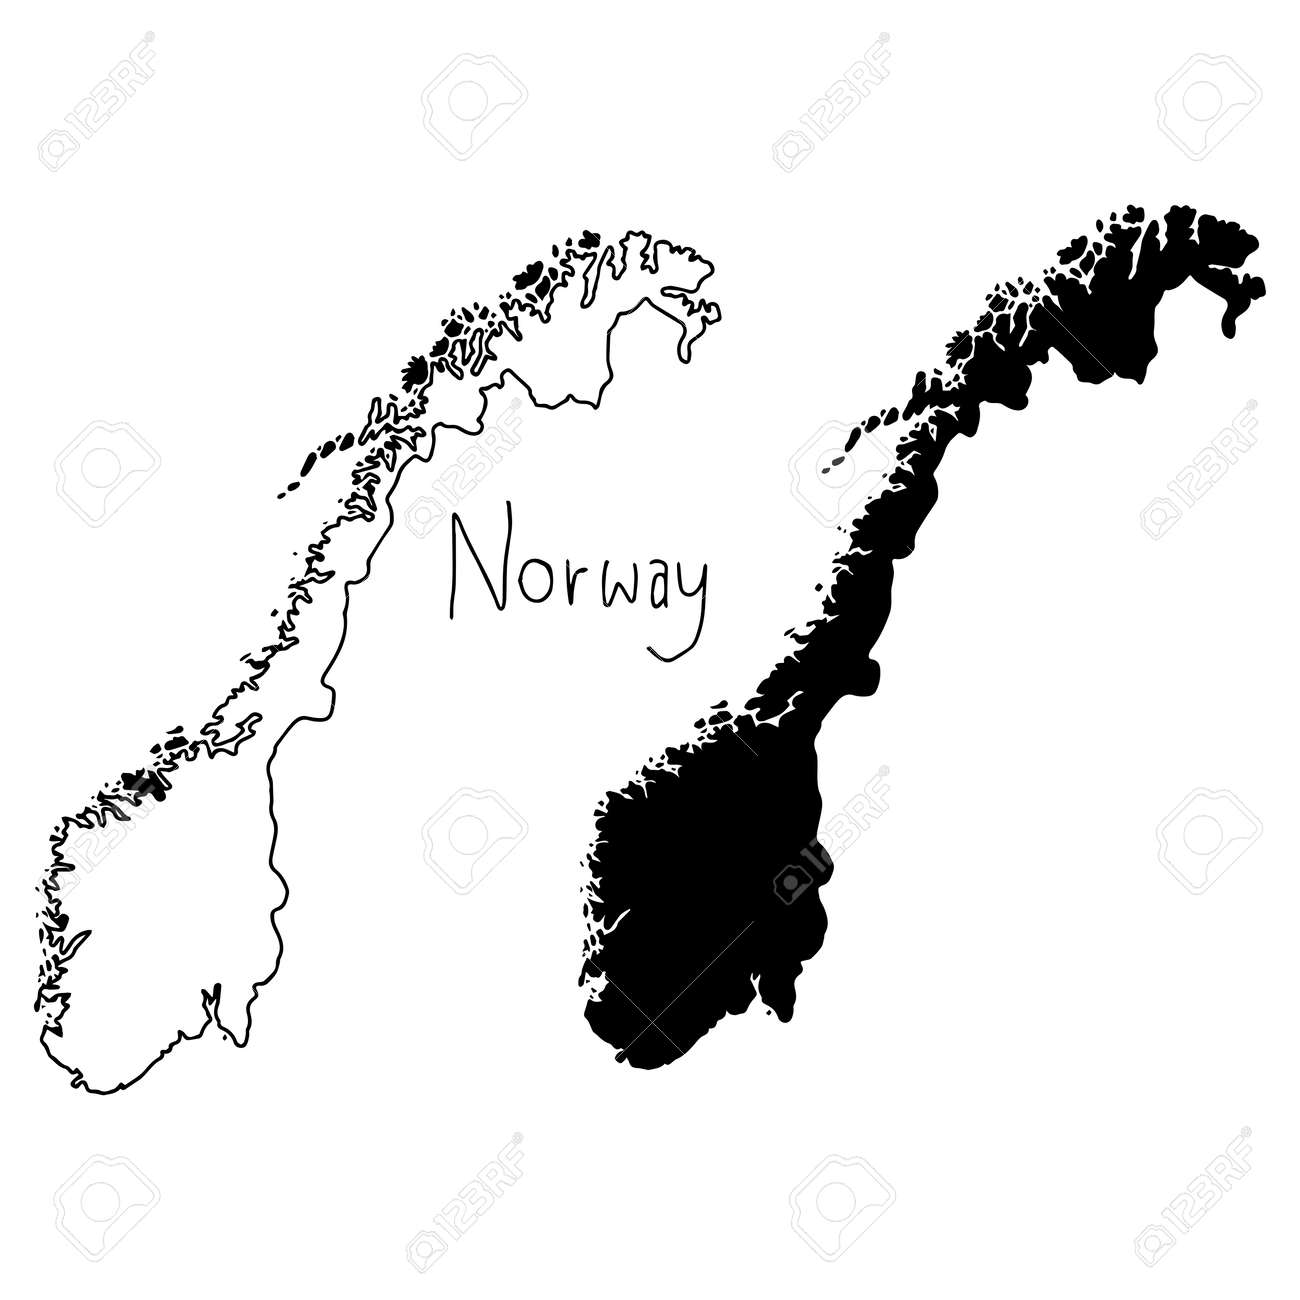 Outline And Silhouette Map Of Norway Vector Illustration Hand - Map silhouette